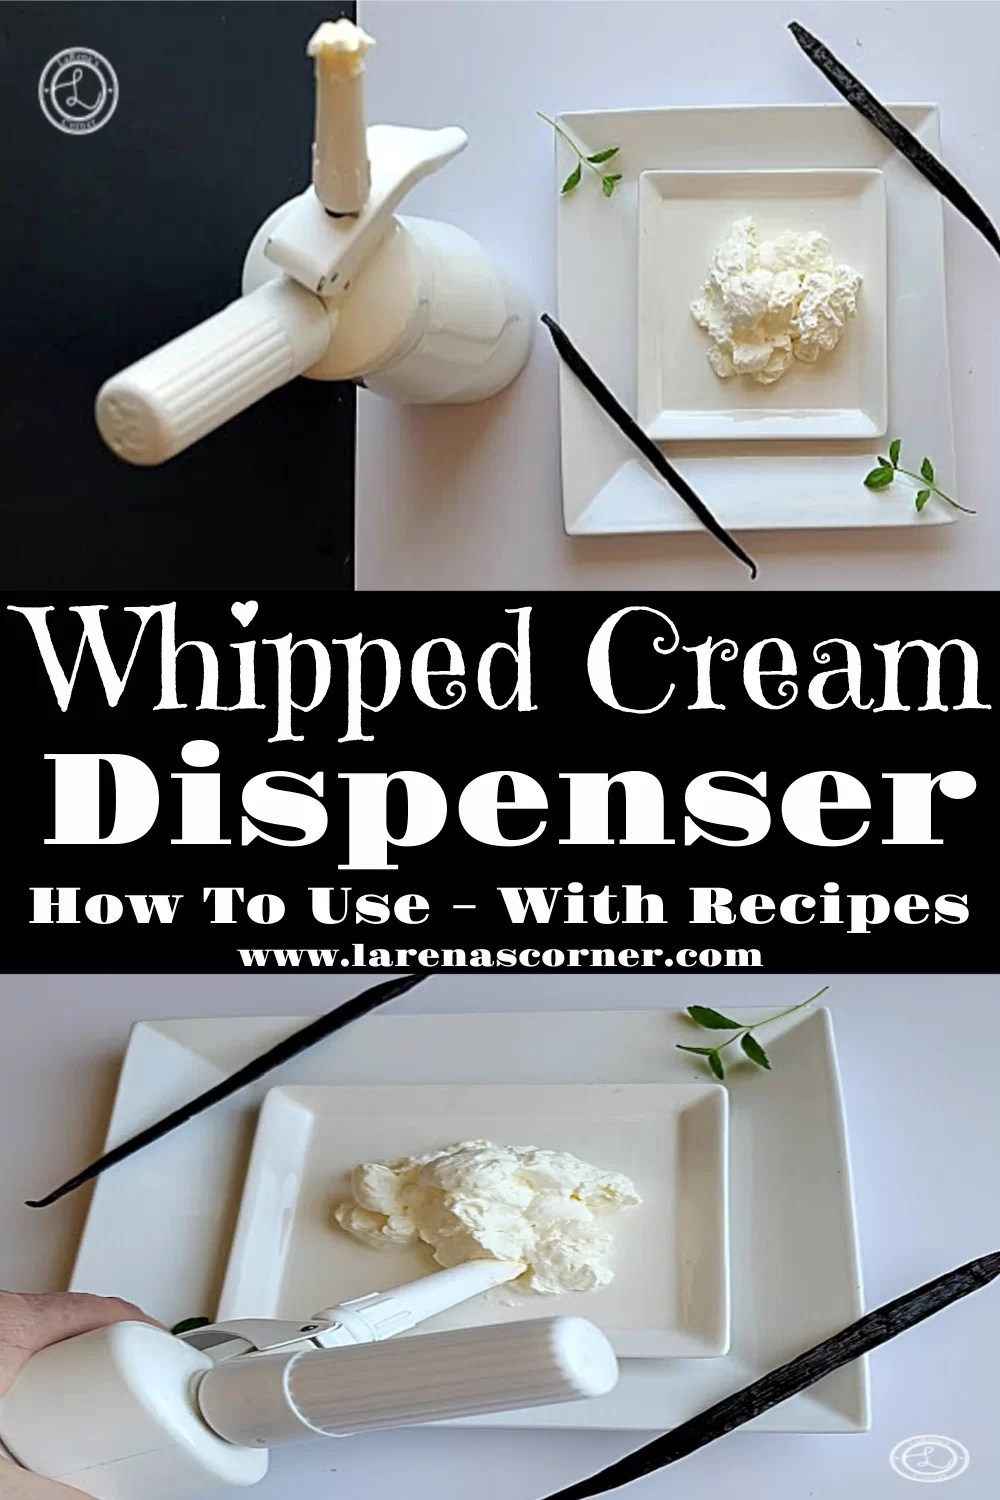 Whipped Cream Dispenser Recipe with two pictures. One of the canister and whipped cream and one of it spraying out whipped cream.